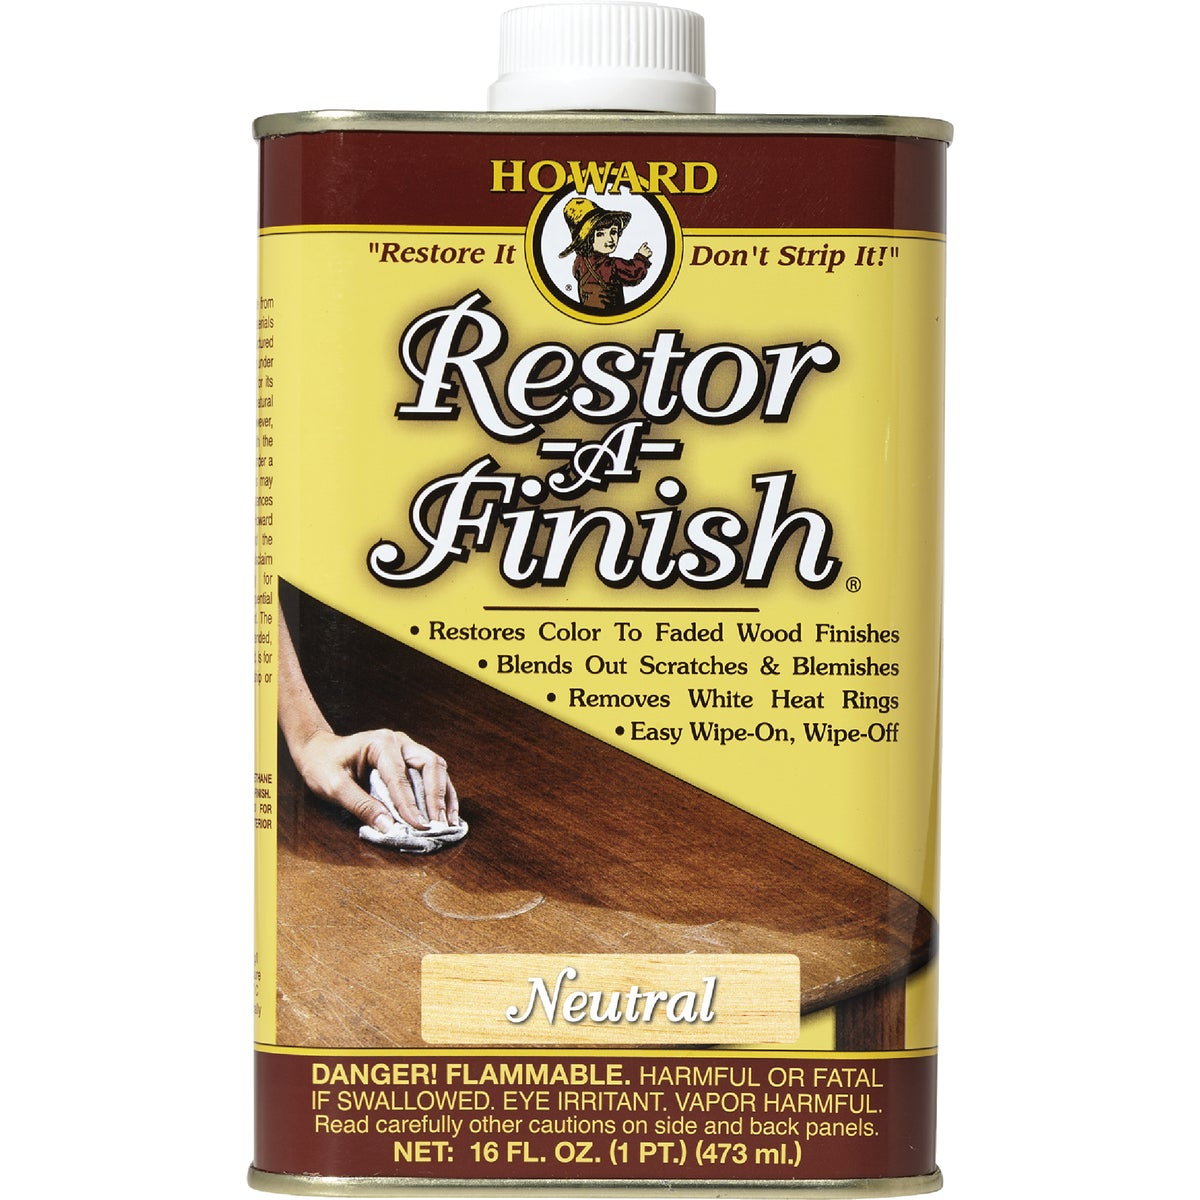 NEUTRAL RESTOR-A-FINISH - RF1016 by Howard Products